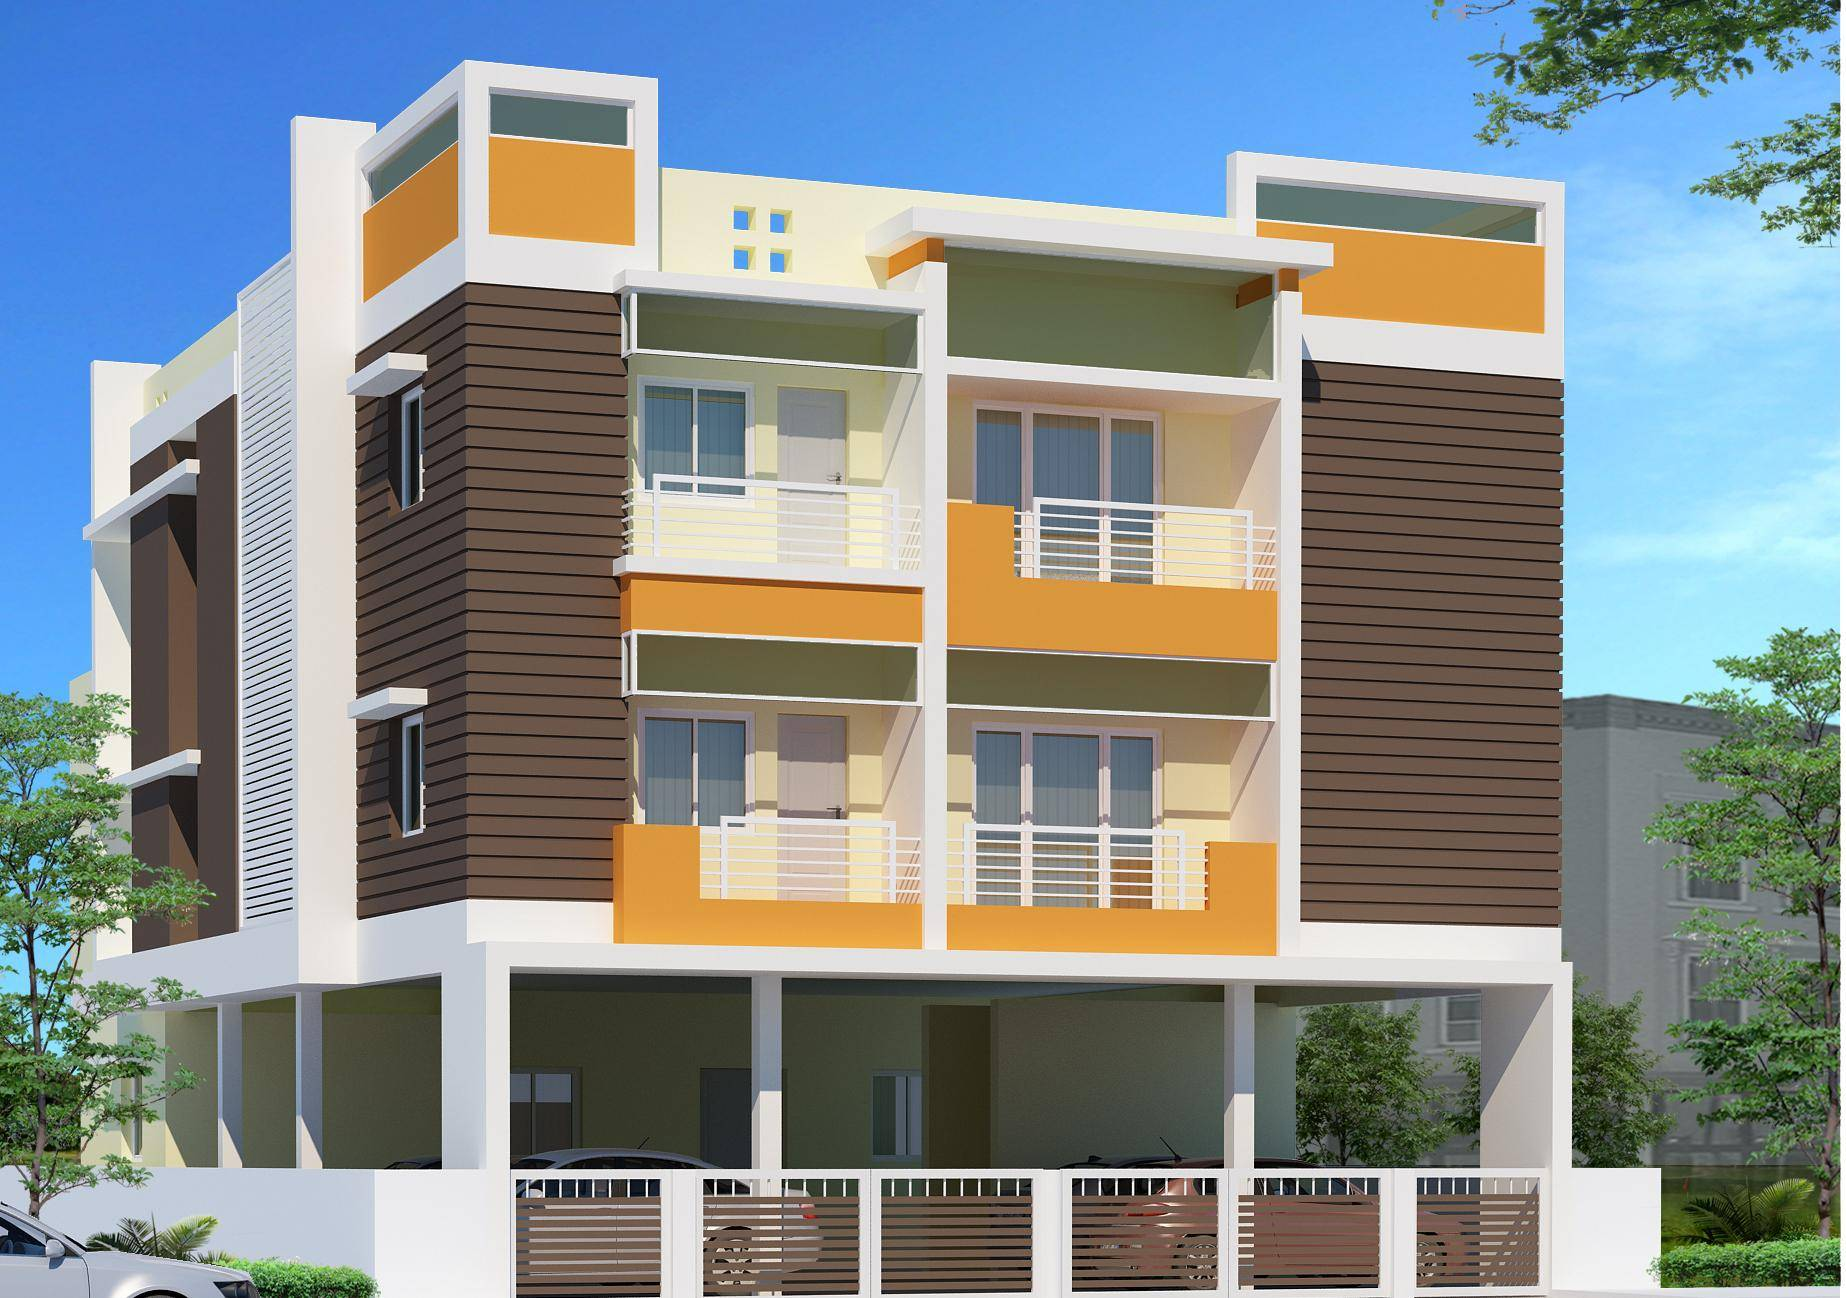 Storey Residential Building Design Top Home Building